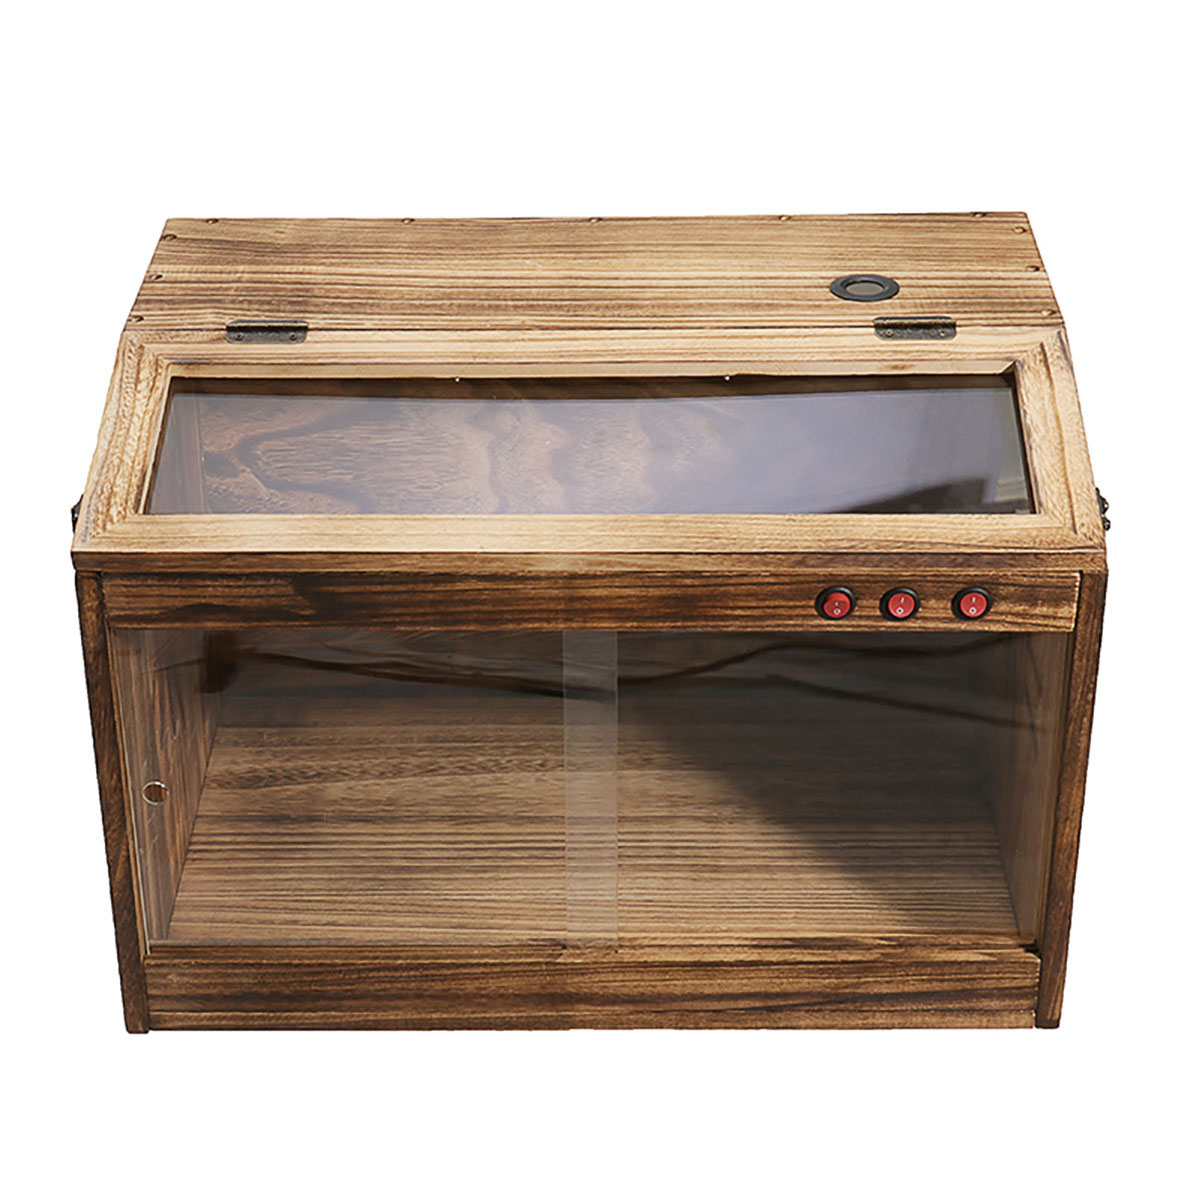 Pet Reptiles Wooden Terrarium Window Enclosure Cage Lizard Snake Tortoise Tank Lock Vent Pet Reptiles Supplies Tools Container